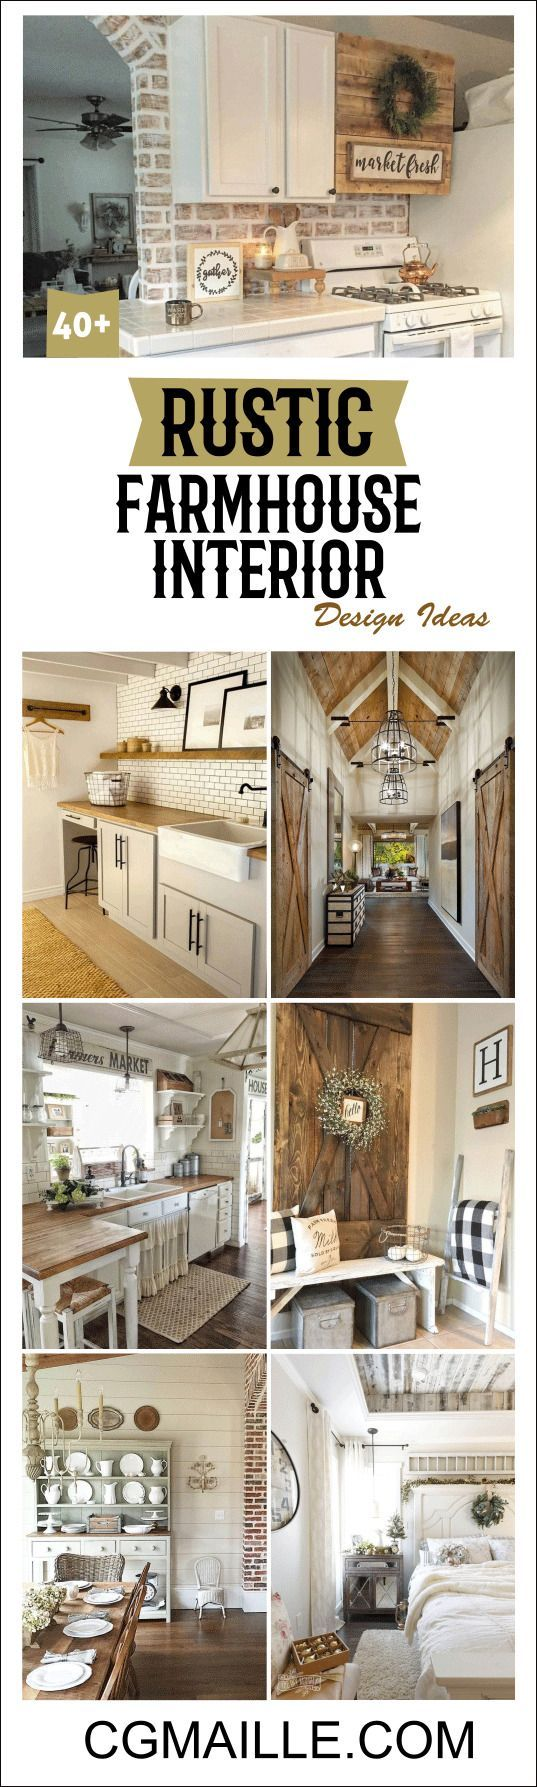 Simply Farmhouse Interior Design Ideas Has Certain Medium